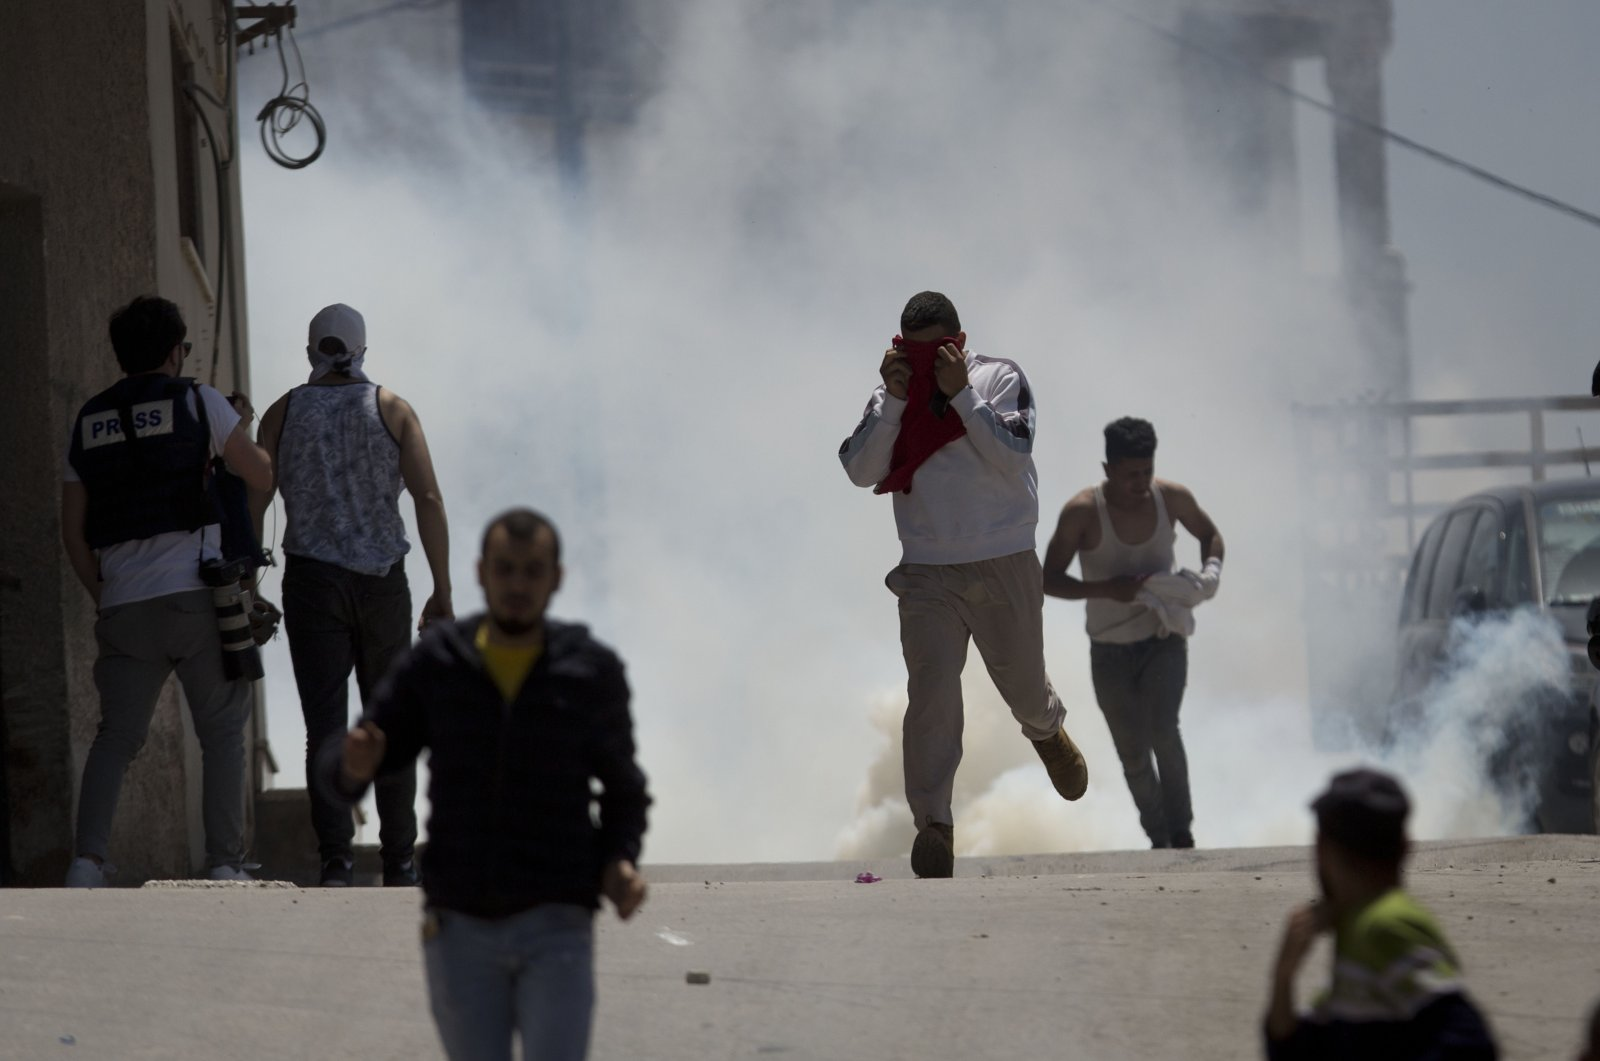 Palestinians run away from tear gas fired by Israeli soldiers in the village of Yabad near the West Bank city of Jenin, May. 12, 2020. (AP Photo)